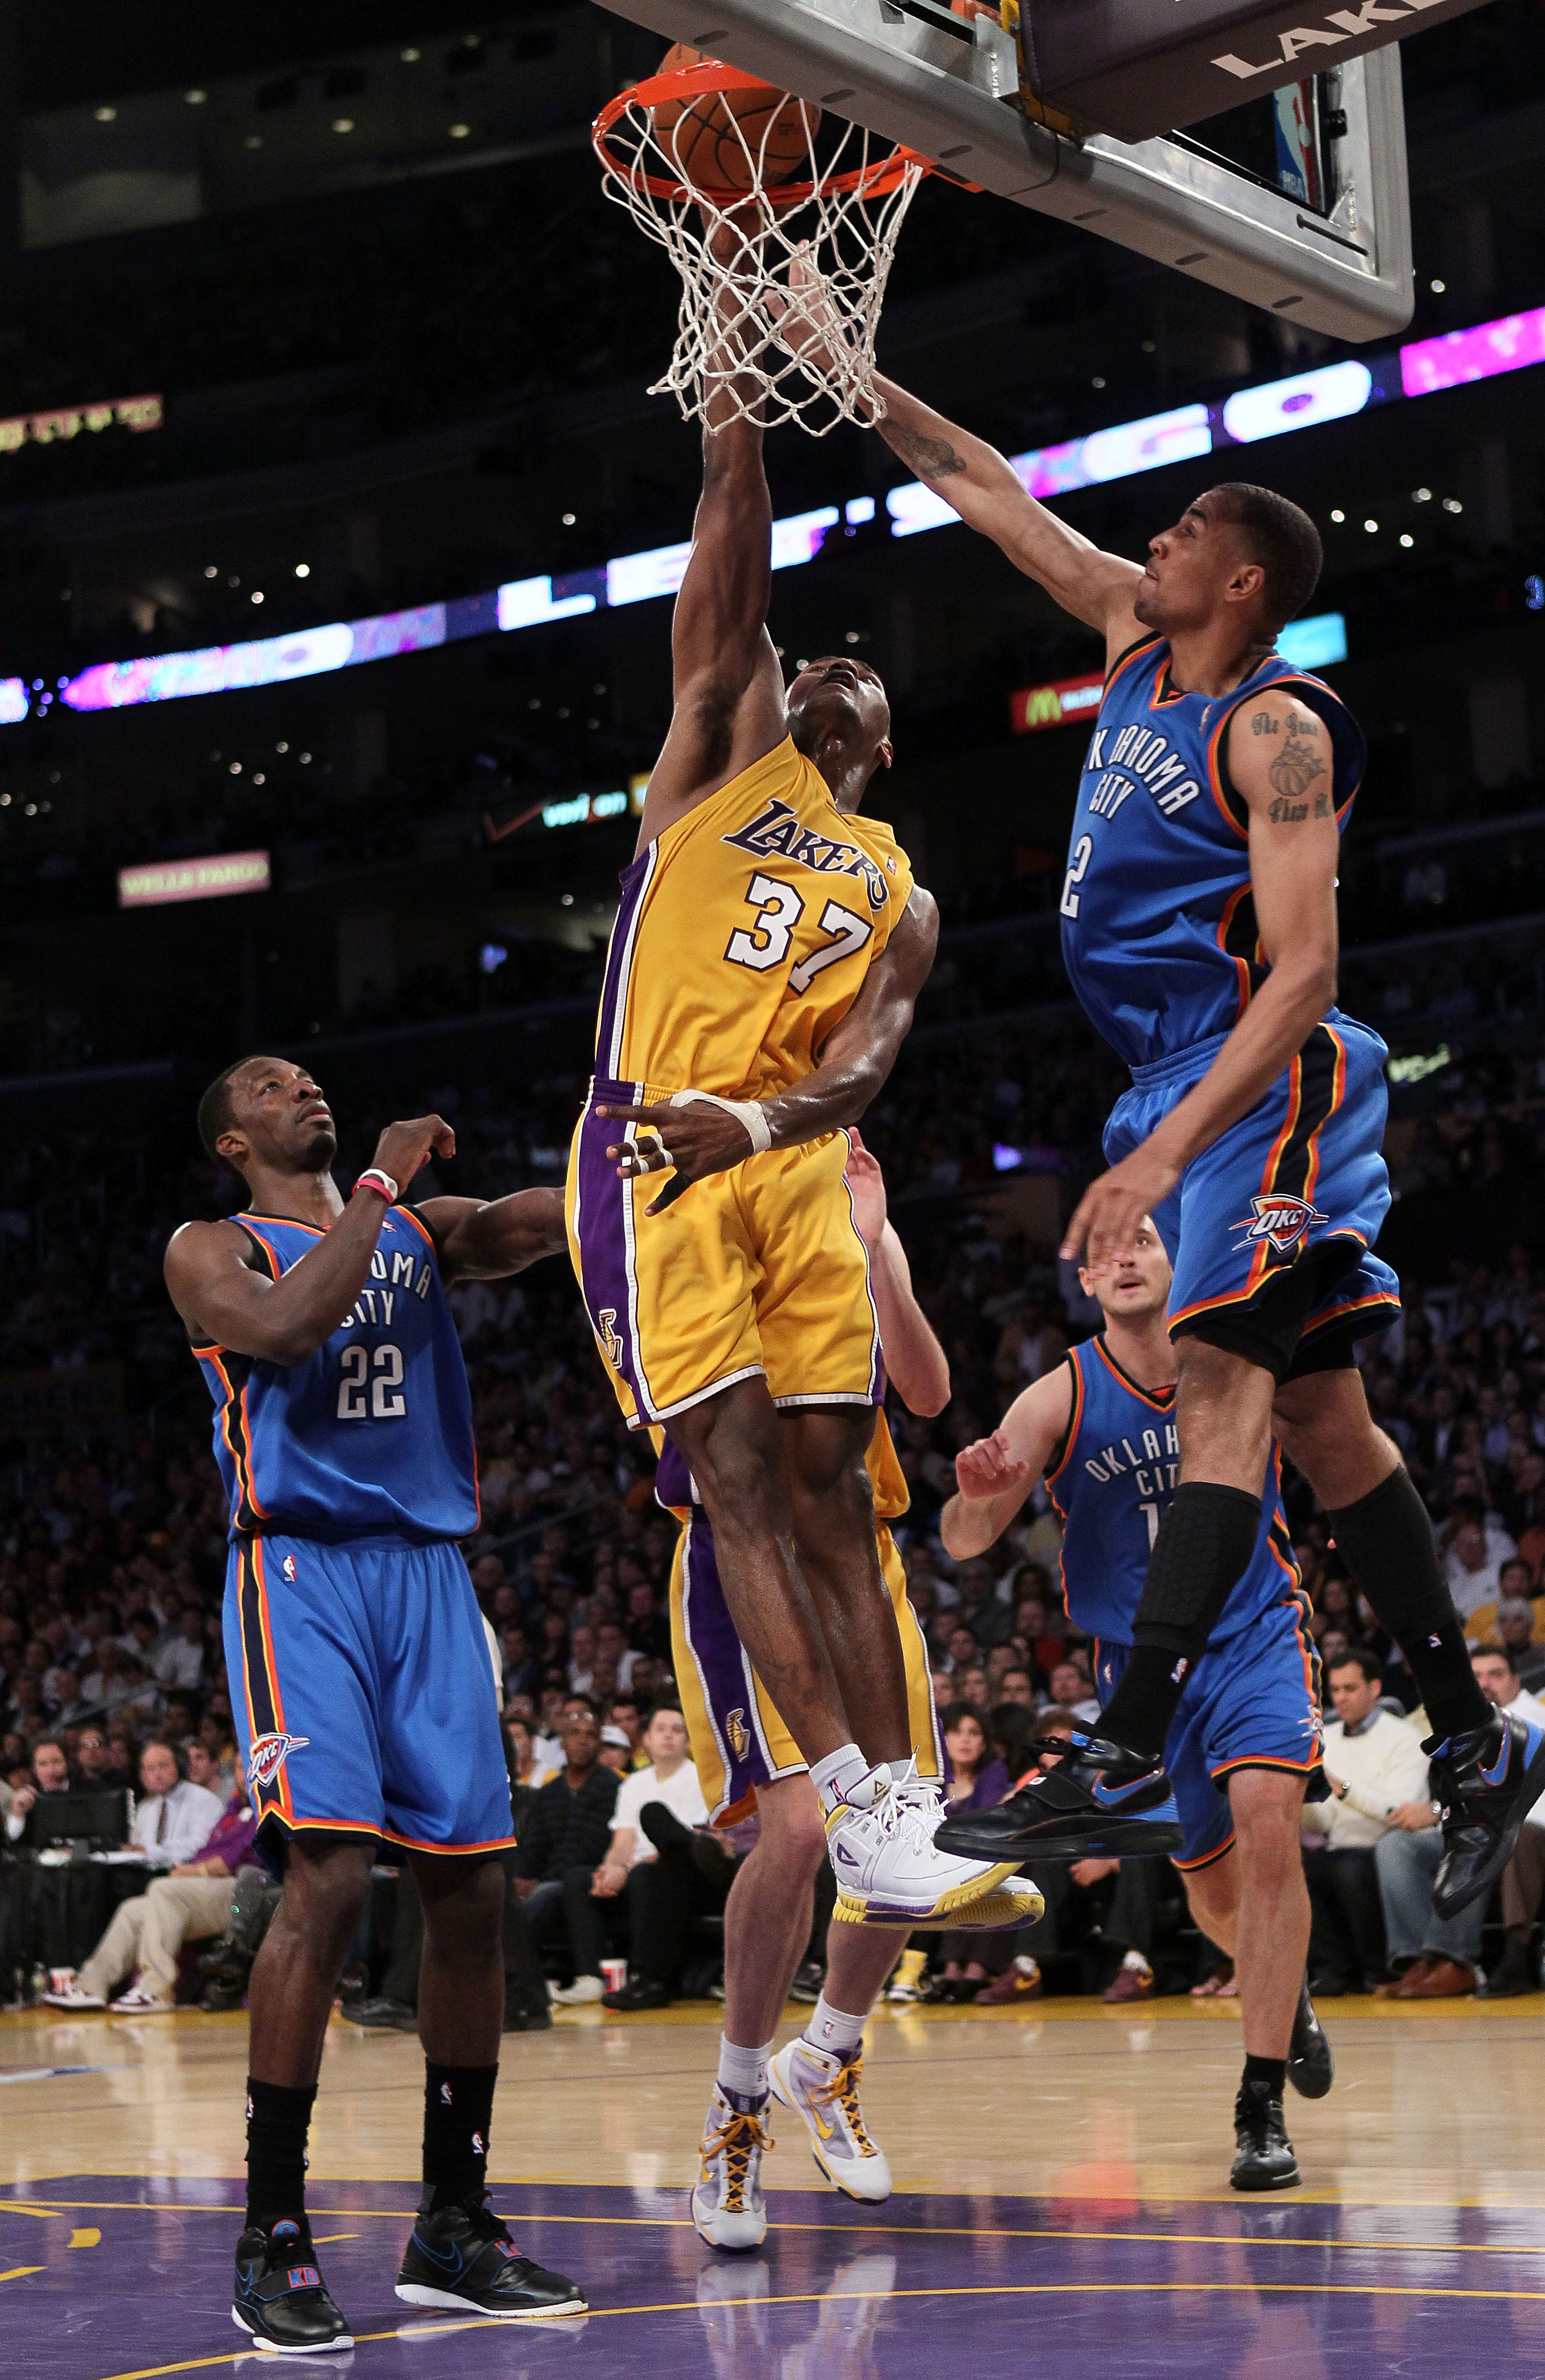 LOS ANGELES, CA - APRIL 27:  Ron Artest #37 of the Los Angeles Lakers goes up for a dunk between Jeff Green #22 and Thabo Sefolosha #2 of the Oklahoma City Thunder in the second quarter during Game Two of the Western Conference Quarterfinals of the 2010 N